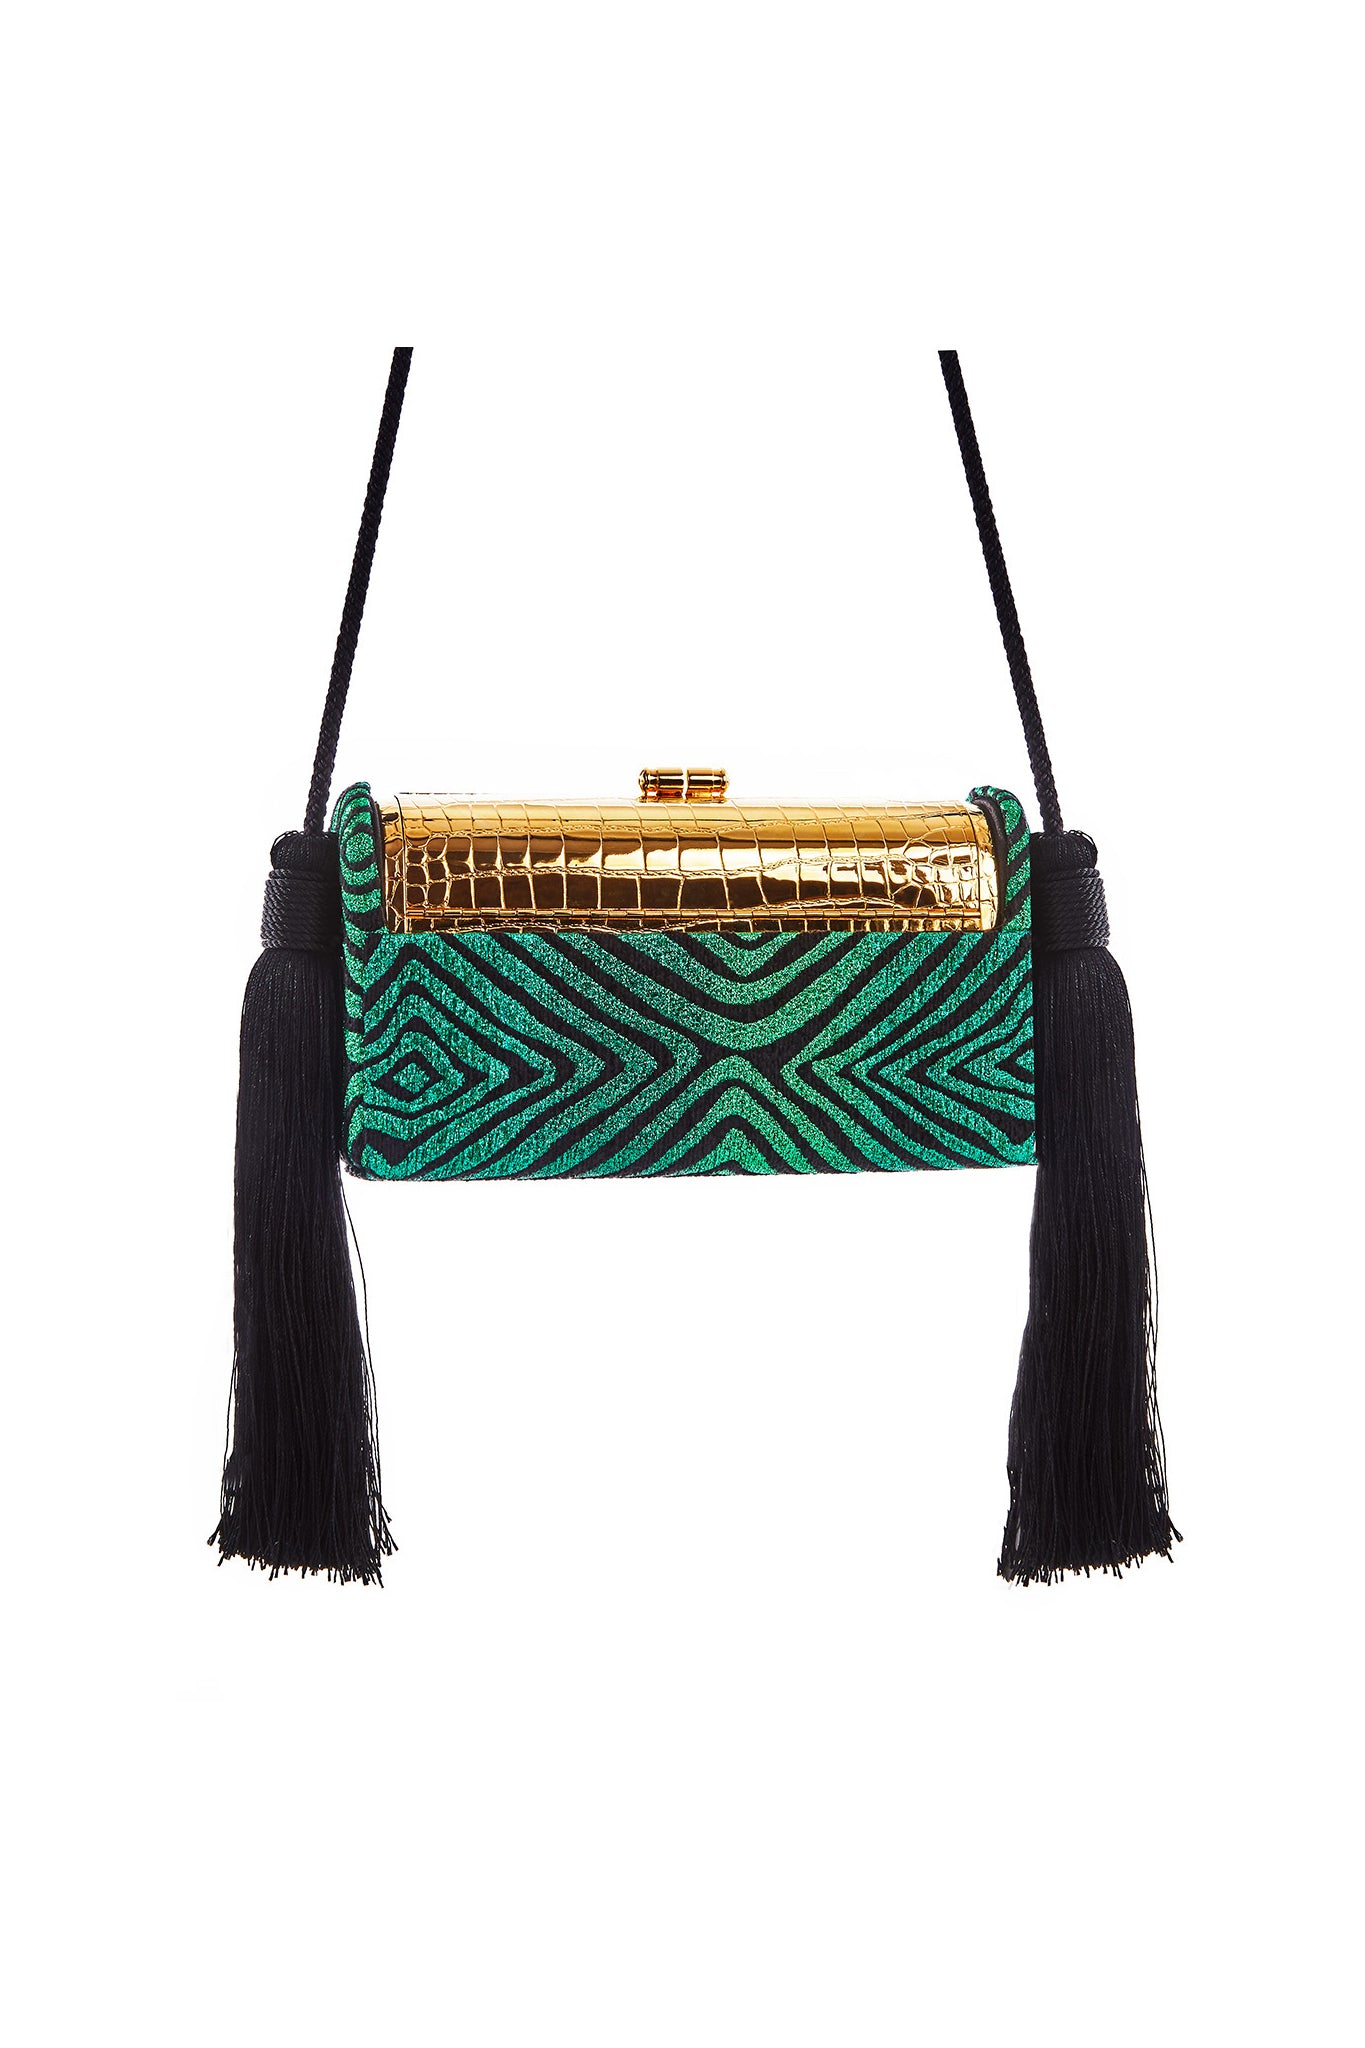 Gold Croco Stamped Régine Minaudière with Emerald Hypnotique Lurex Chenille Tassel Case